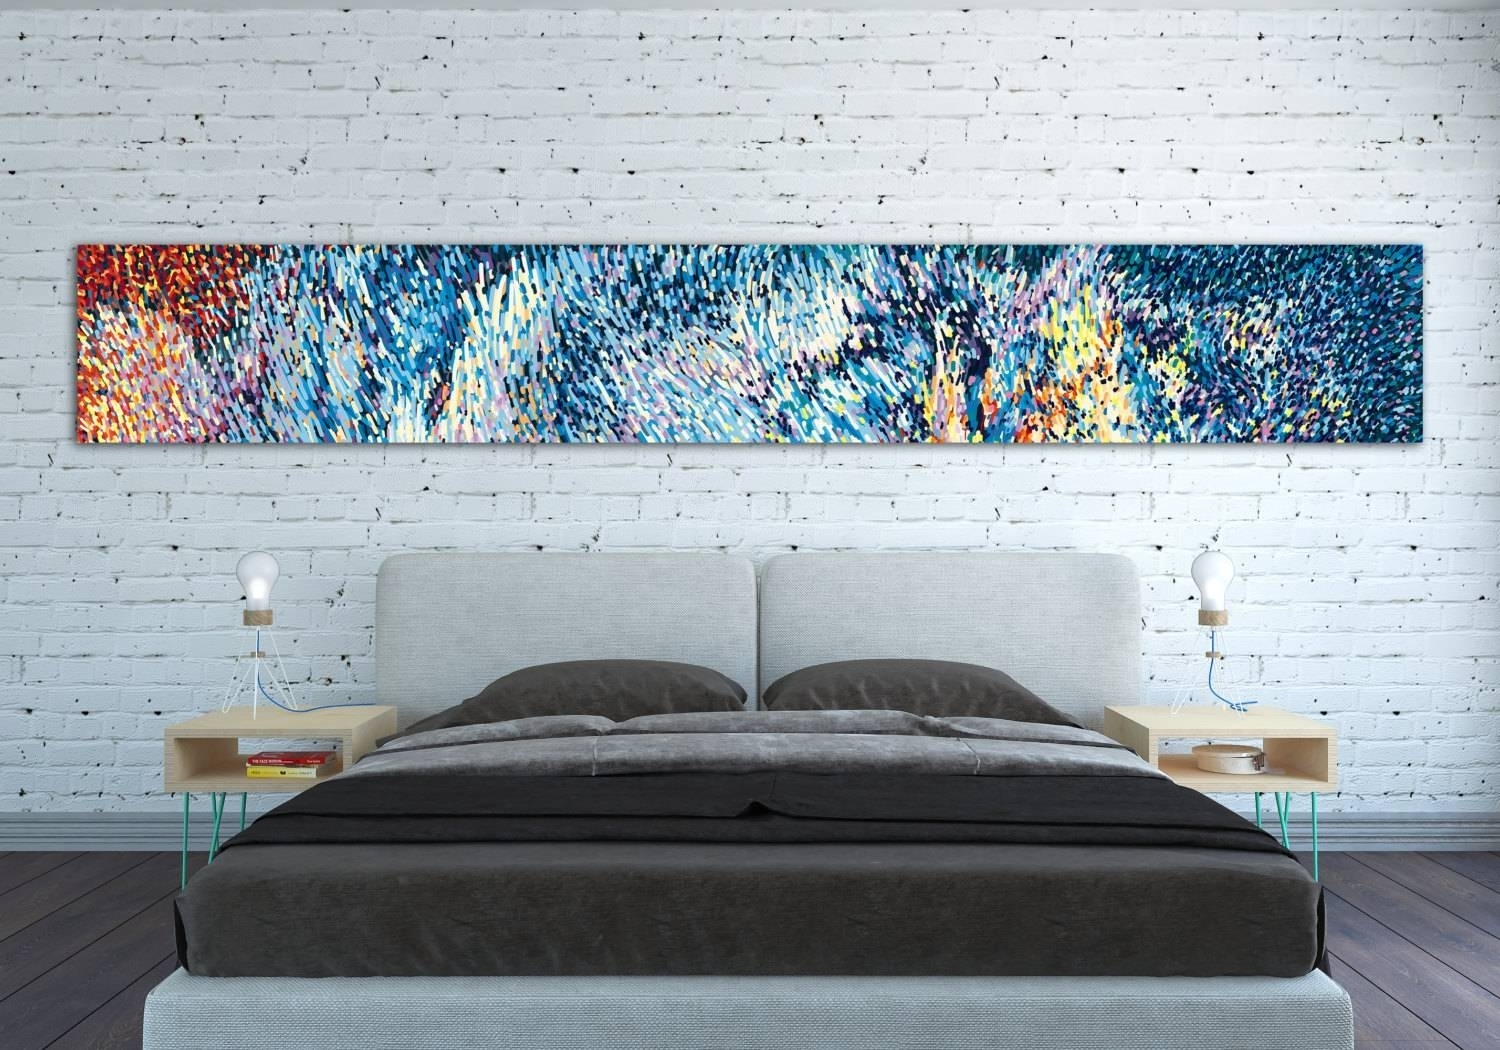 20 Best Collection Of Oversized Canvas Wall Art Pertaining To Best And Newest Abstract Oversized Canvas Wall Art (View 5 of 20)